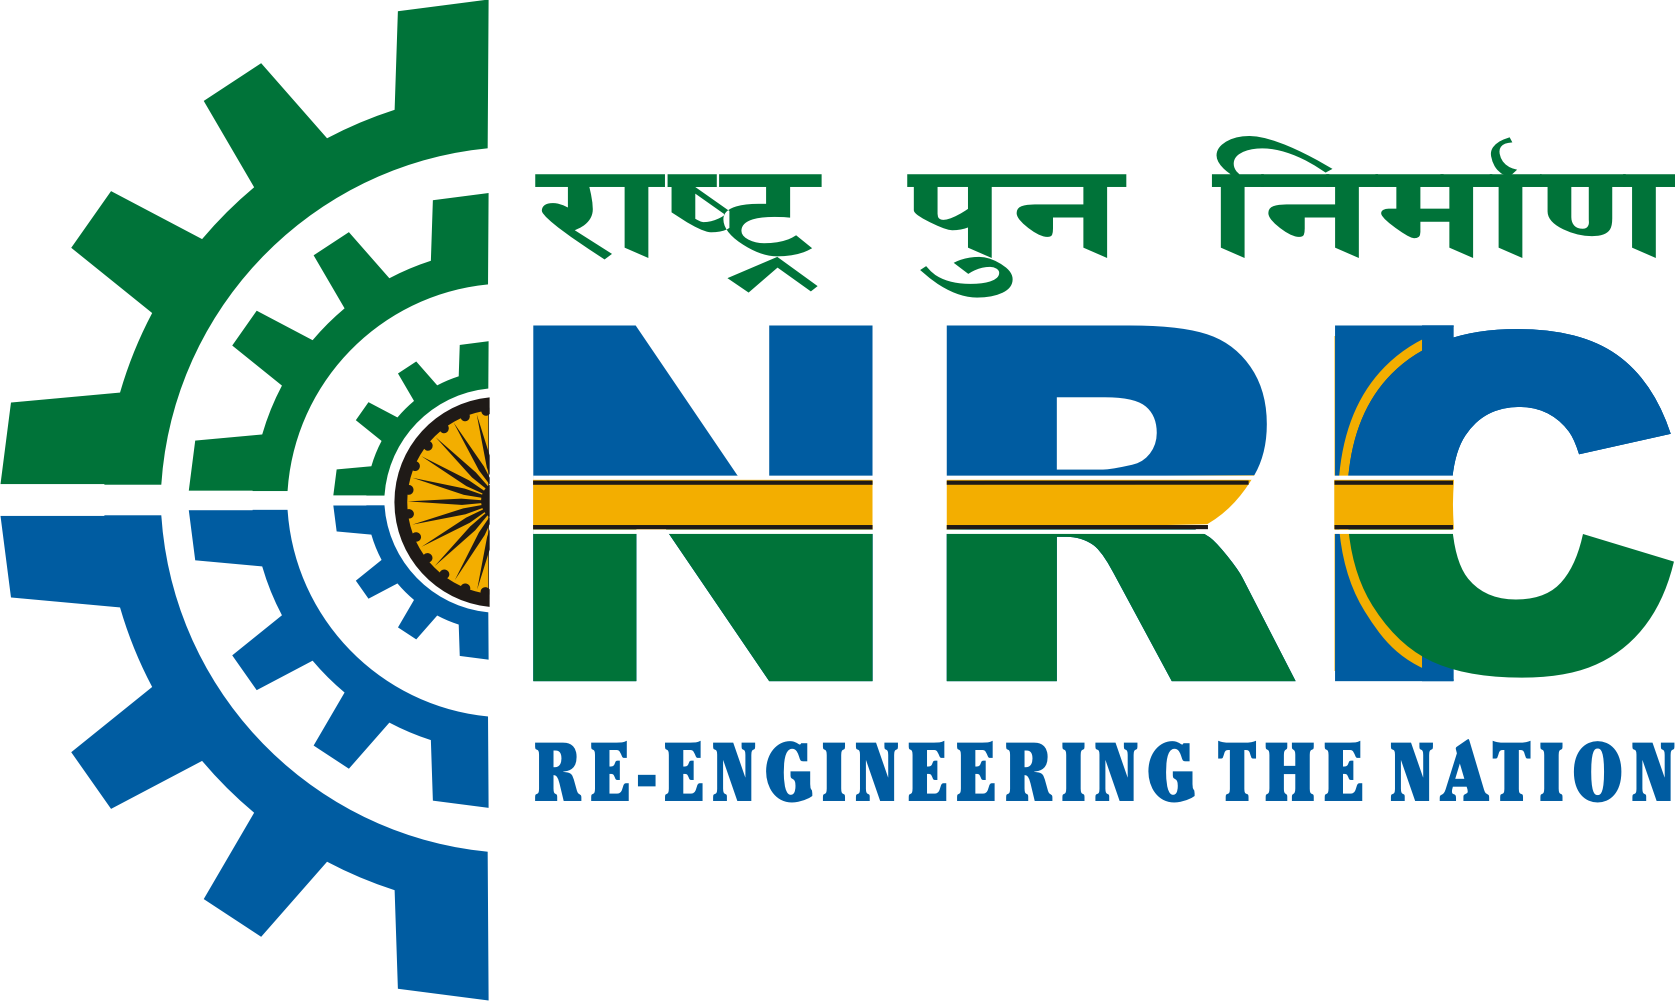 National Re-engineering Corporation